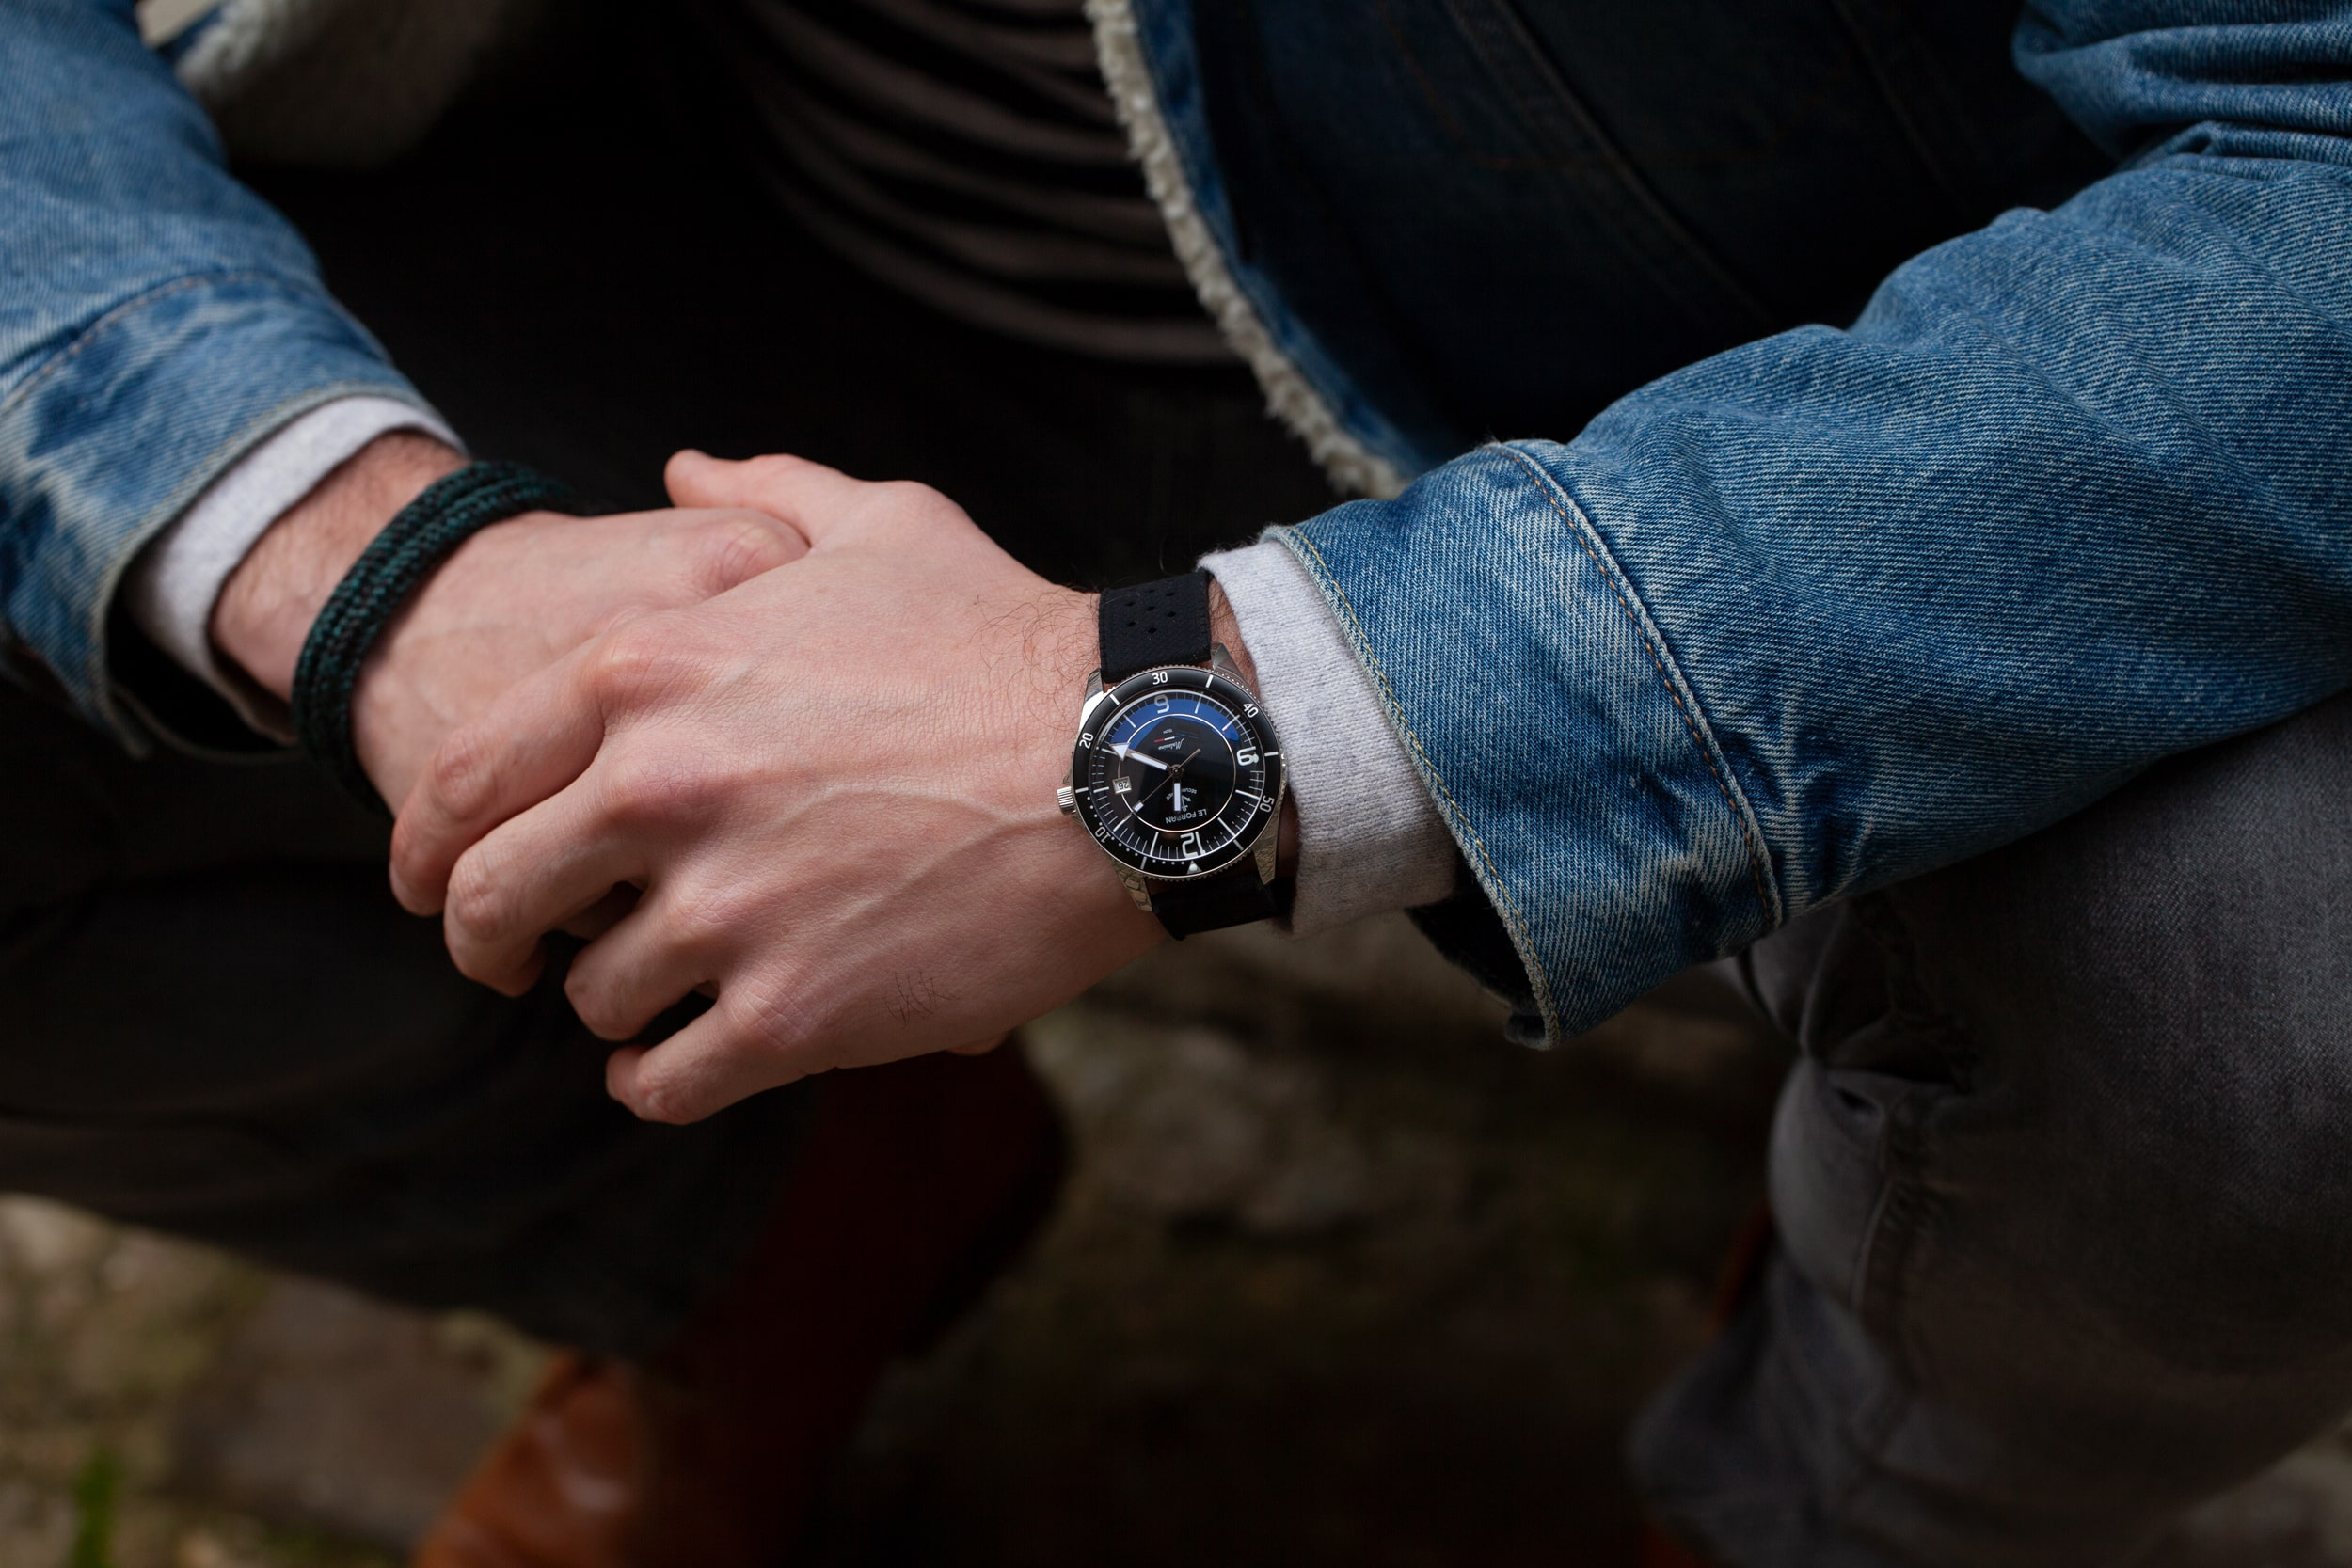 Focus on the watch on a wrist